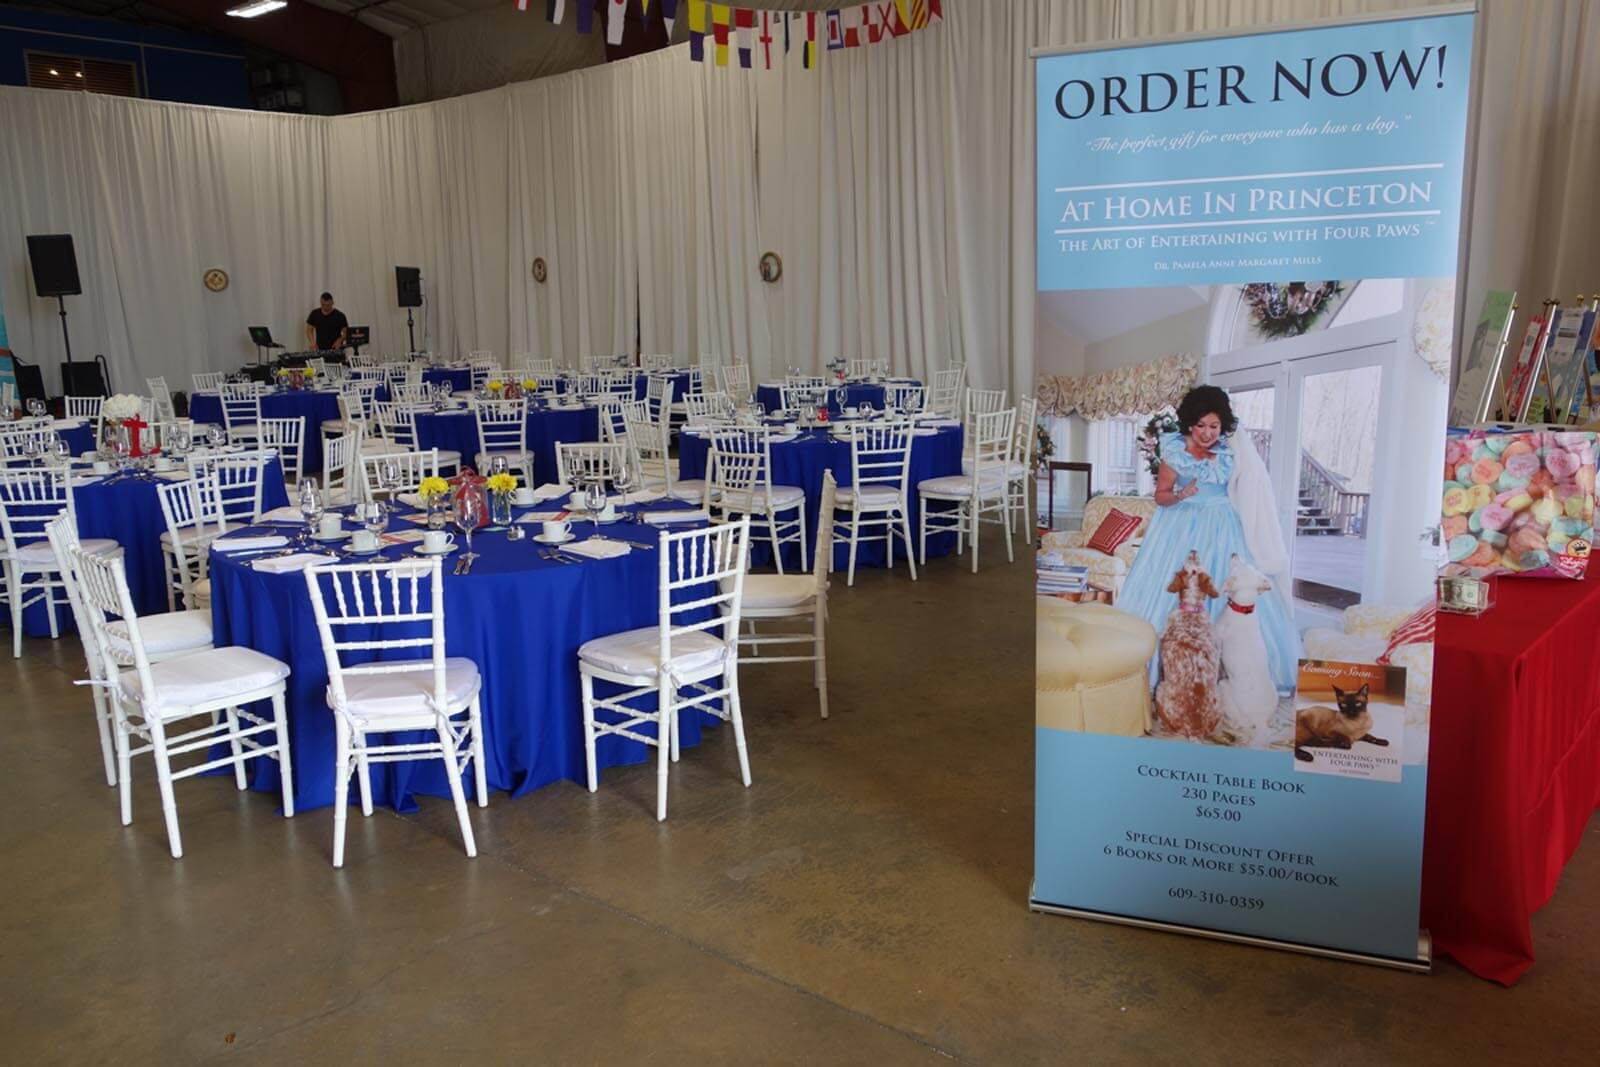 SAVE Gala Benefit at Princeton Airport